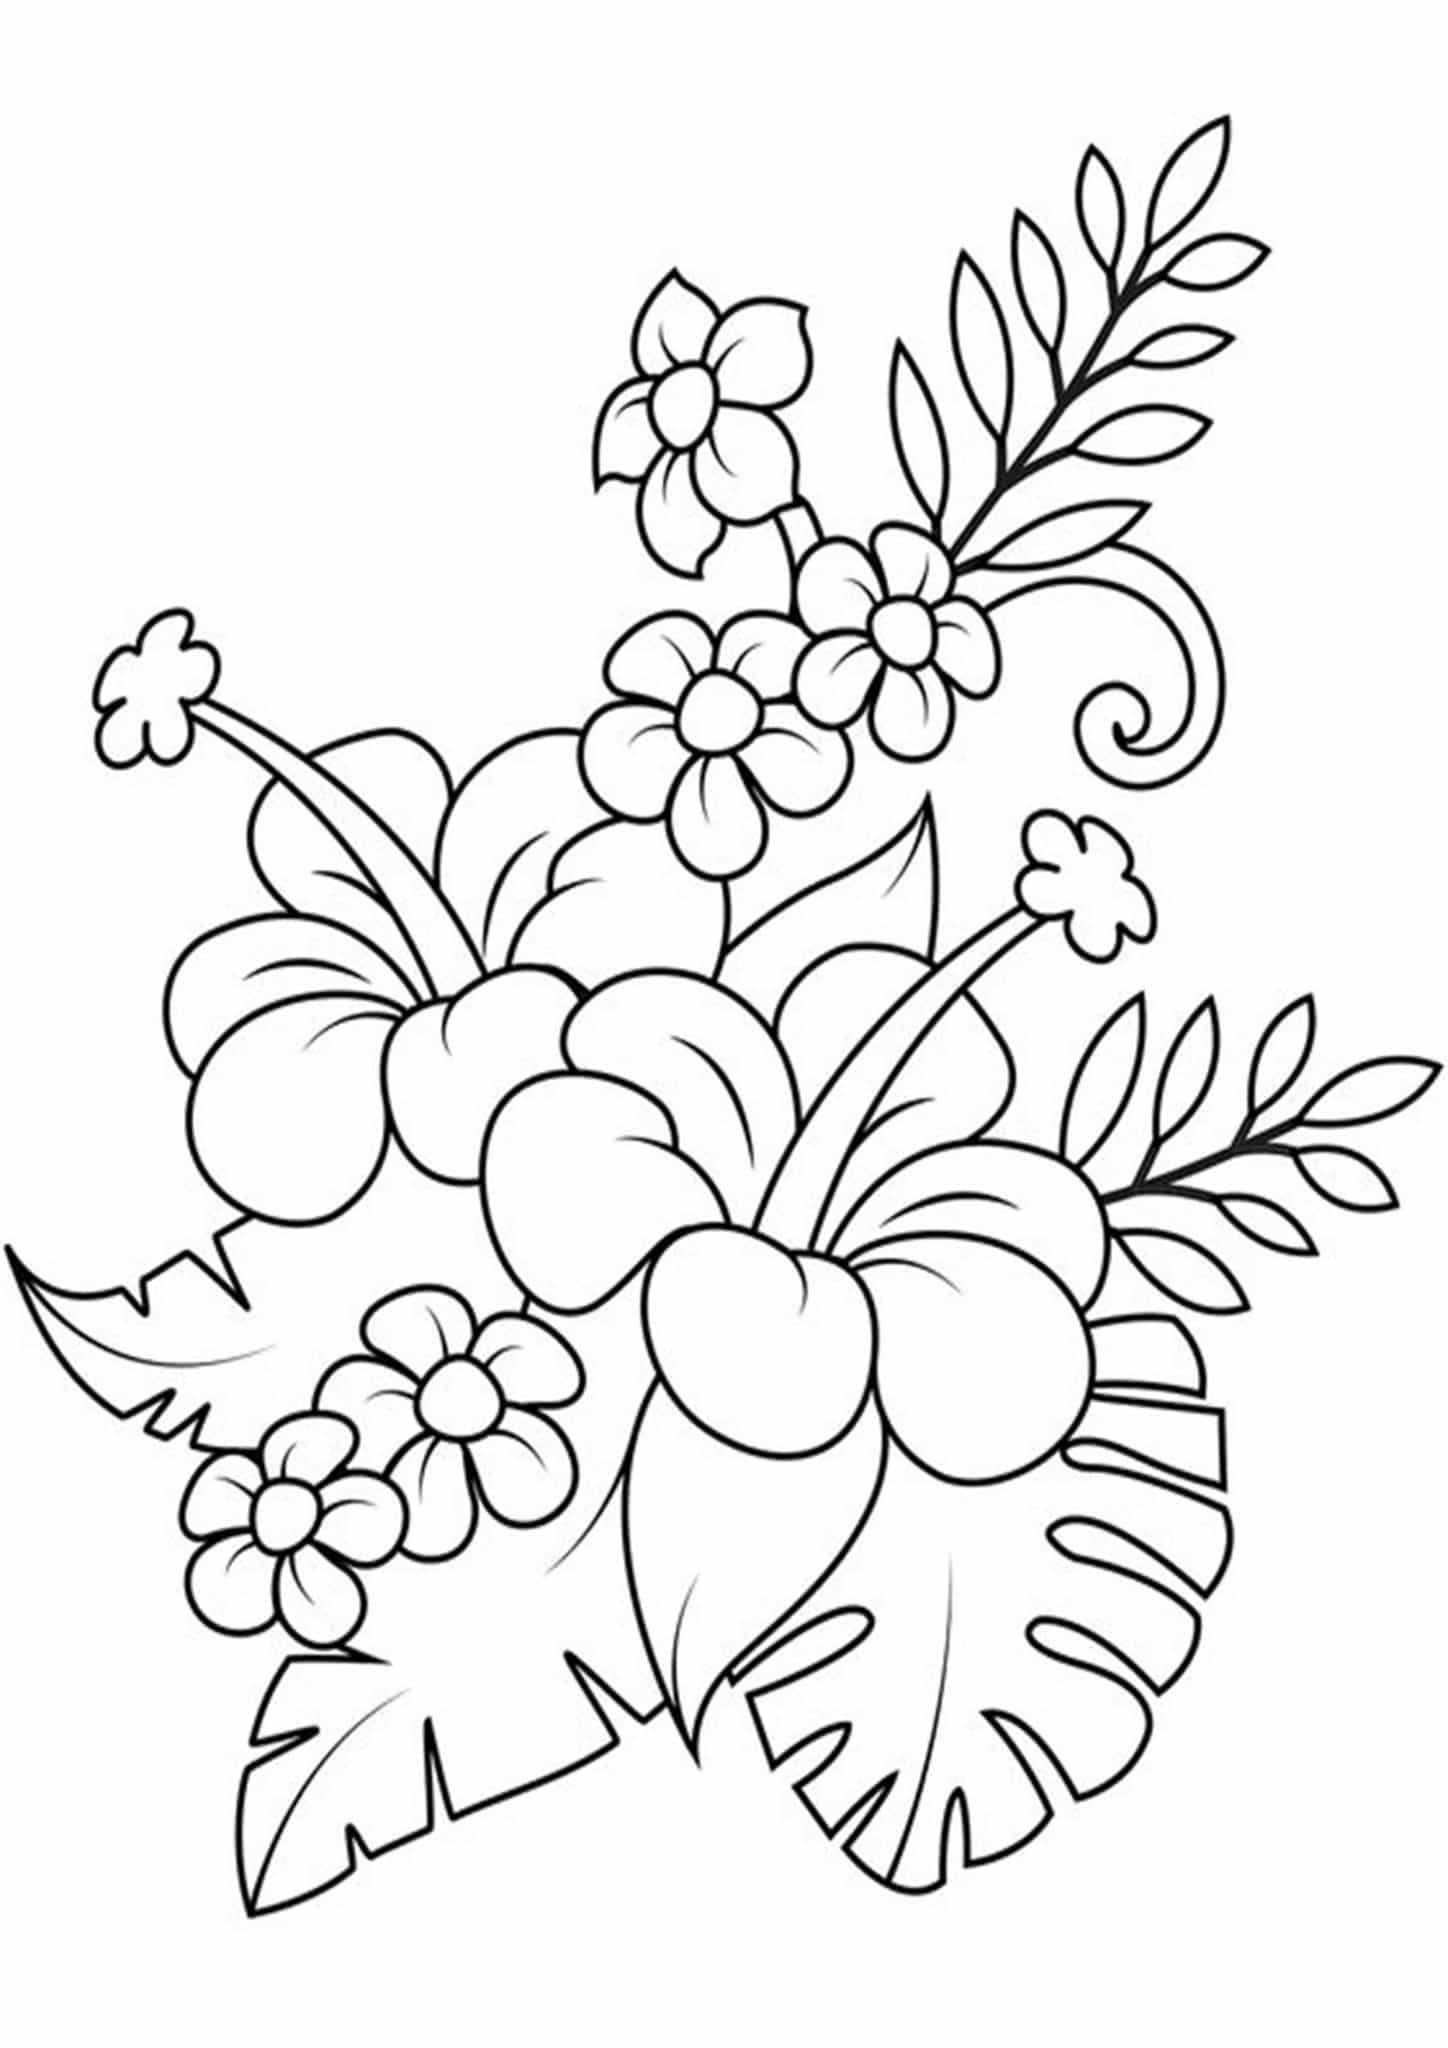 free coloring pages of flowers summer flowers coloring pages at getdrawings free download coloring flowers of pages free